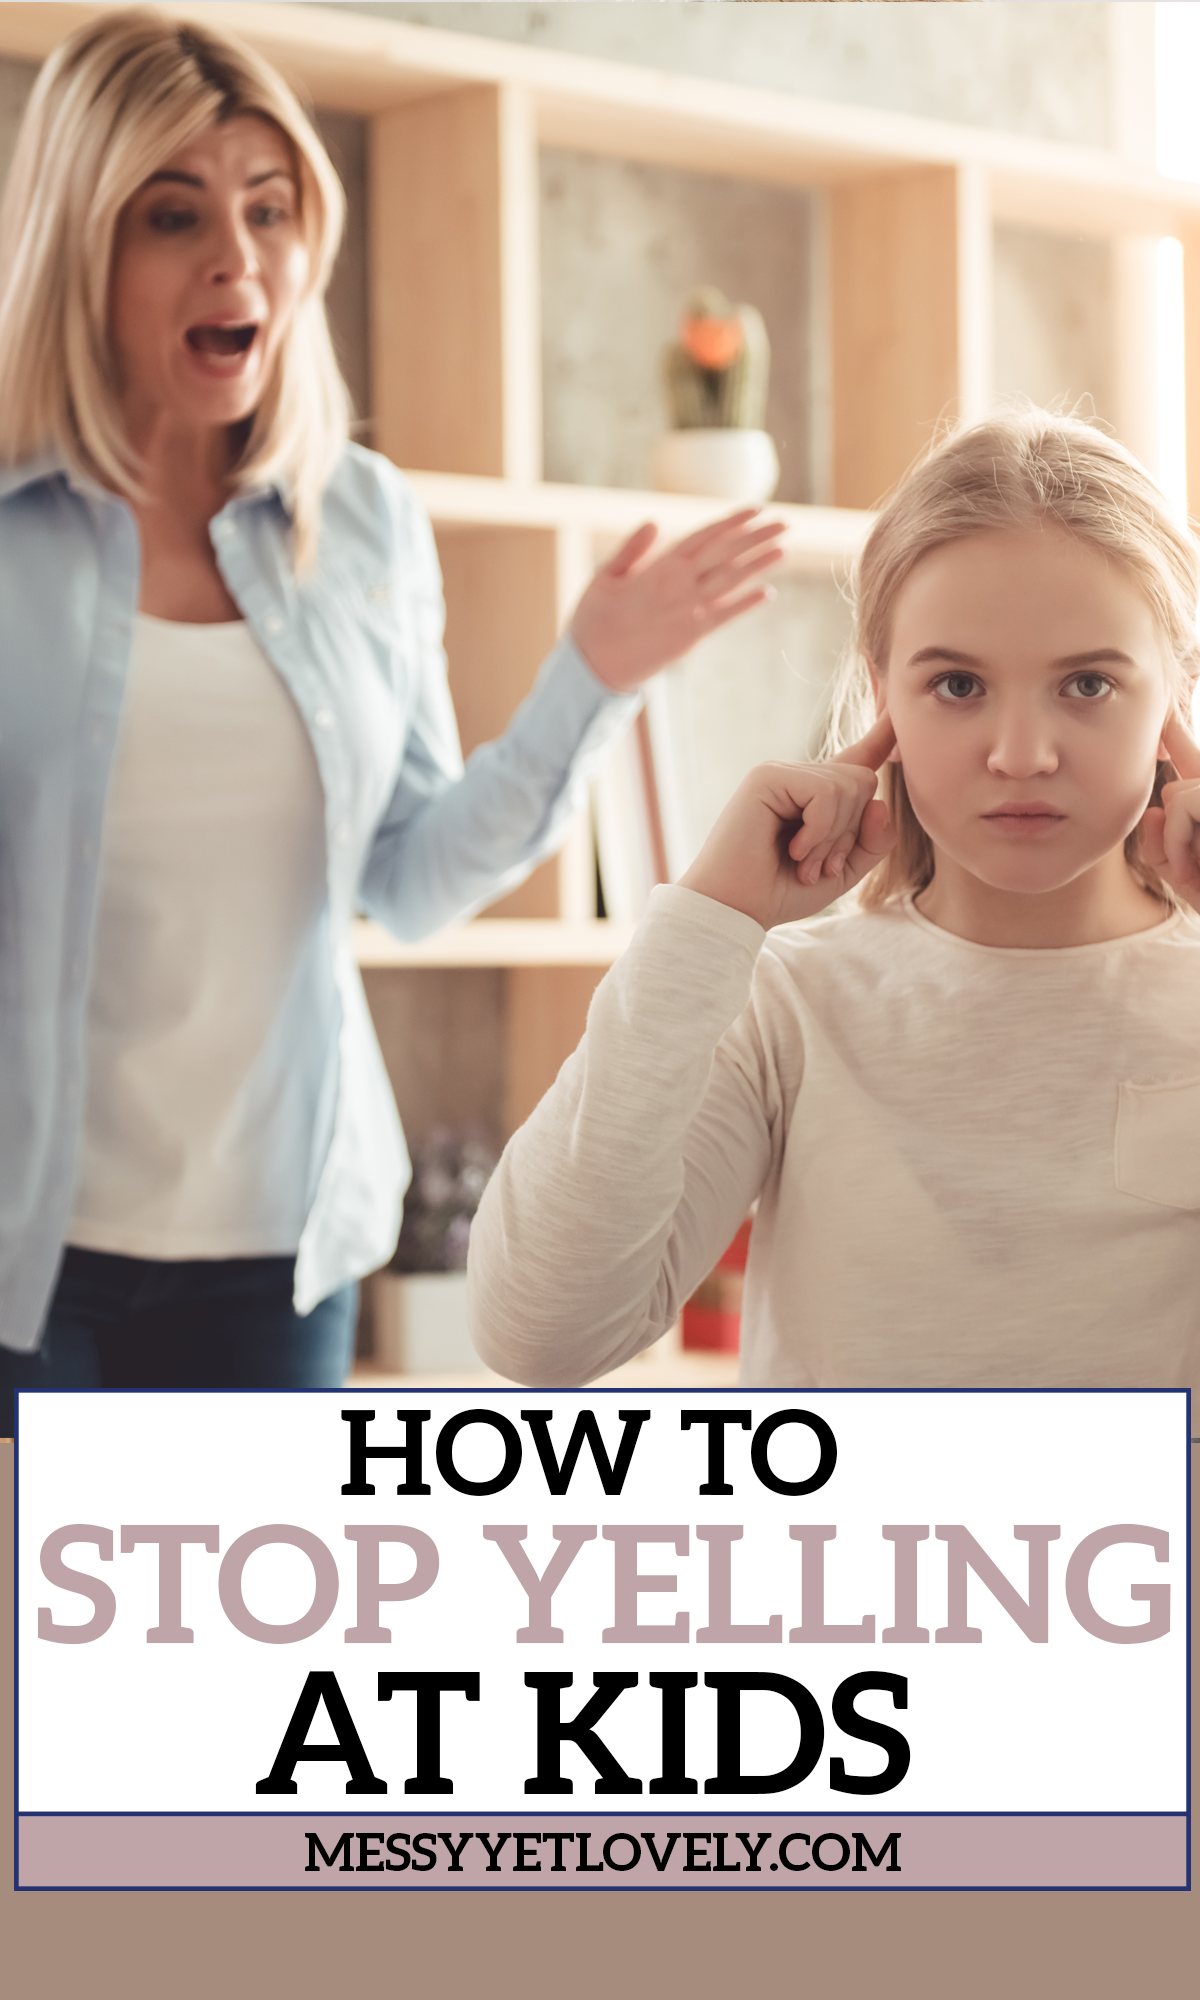 Photo of Yelling makes your voice heard, but silences the message. Click to know how to s…